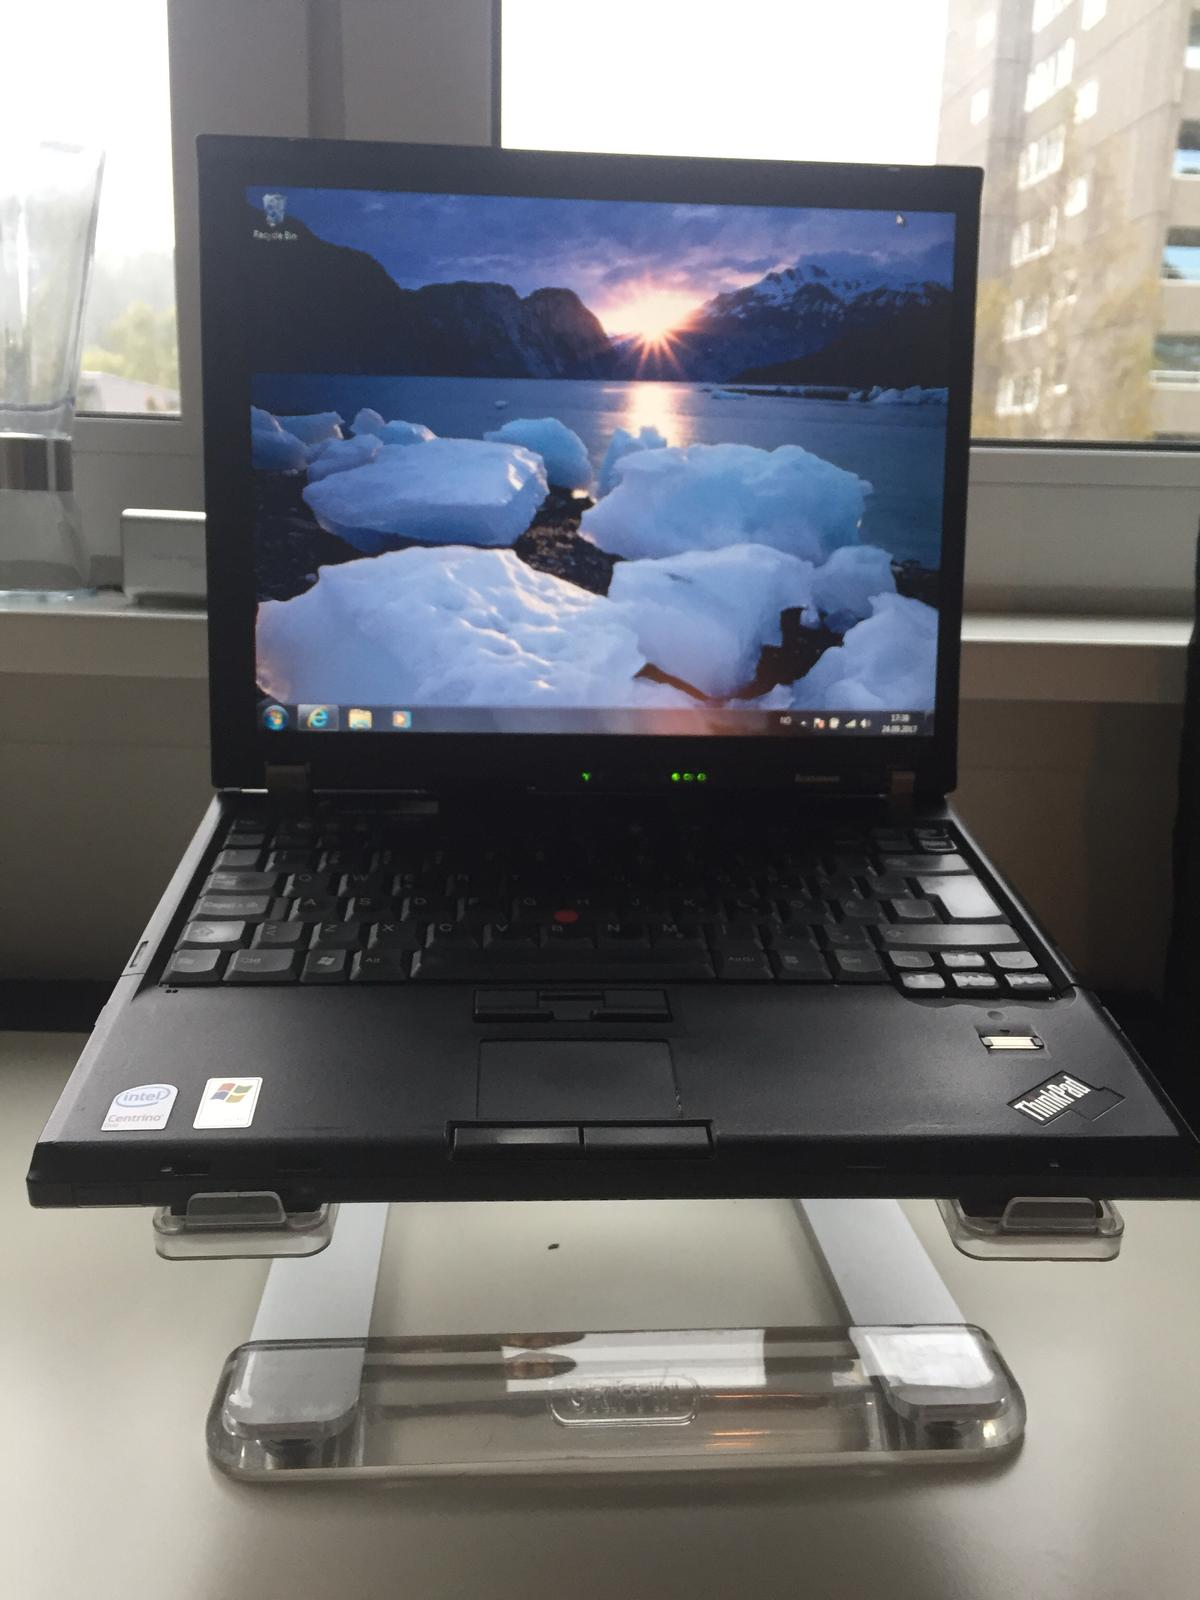 Lenovo Thinkpad T61 in 0674 Oslo for NOK 899 00 for sale - Shpock